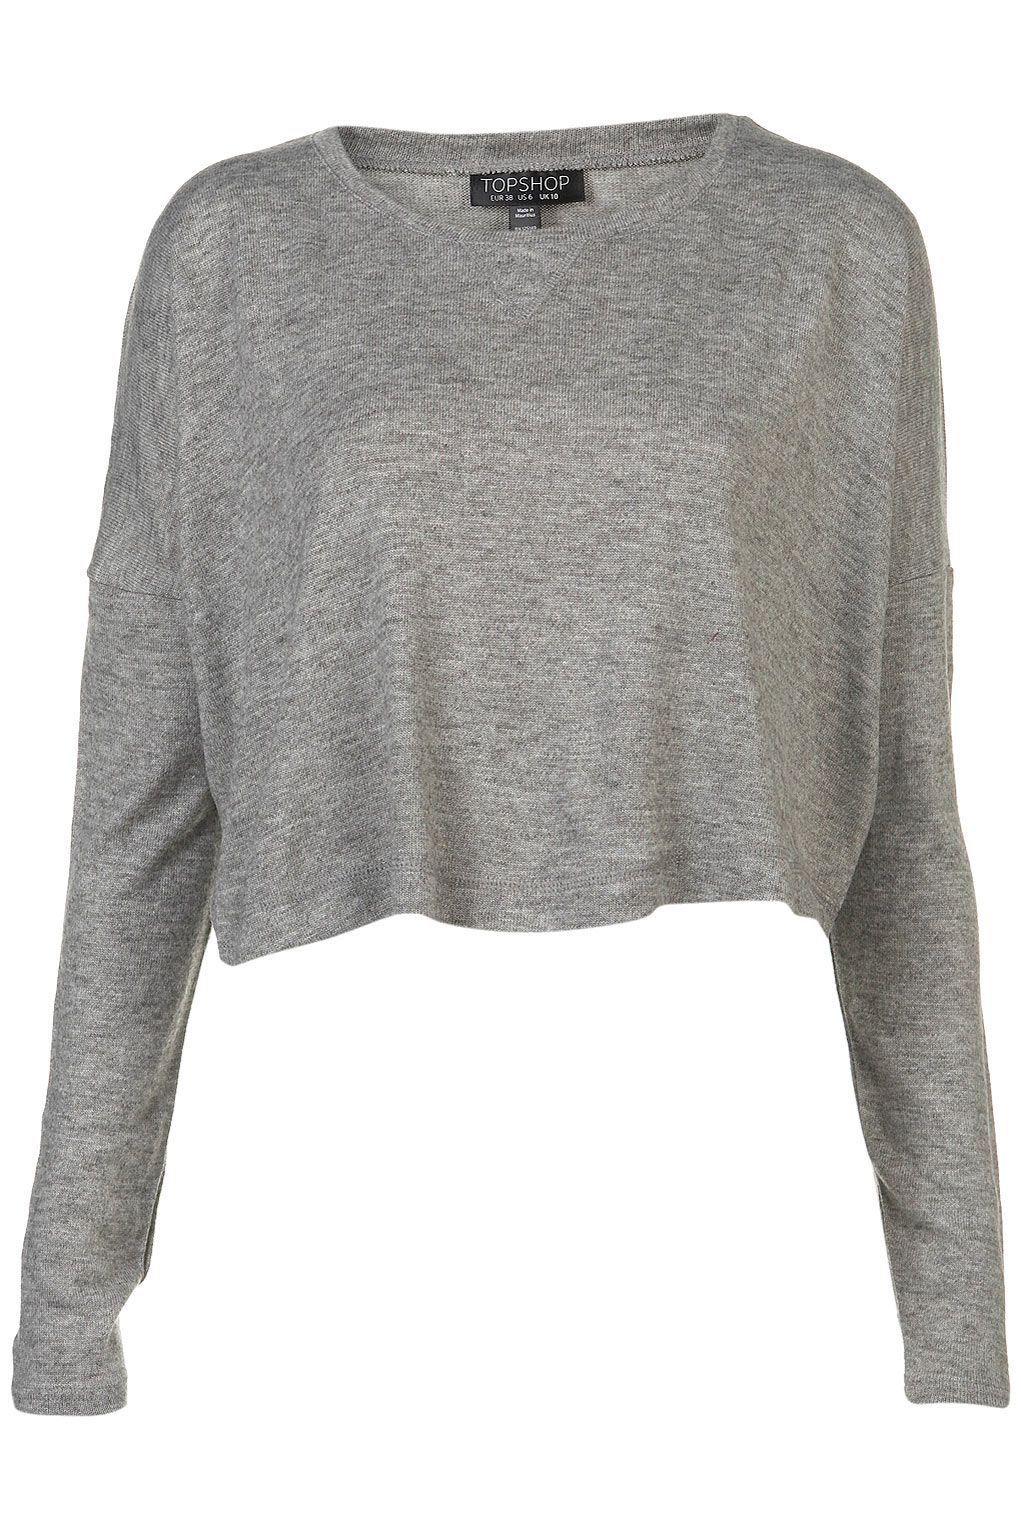 d00cf39afb long sleeve cropped top